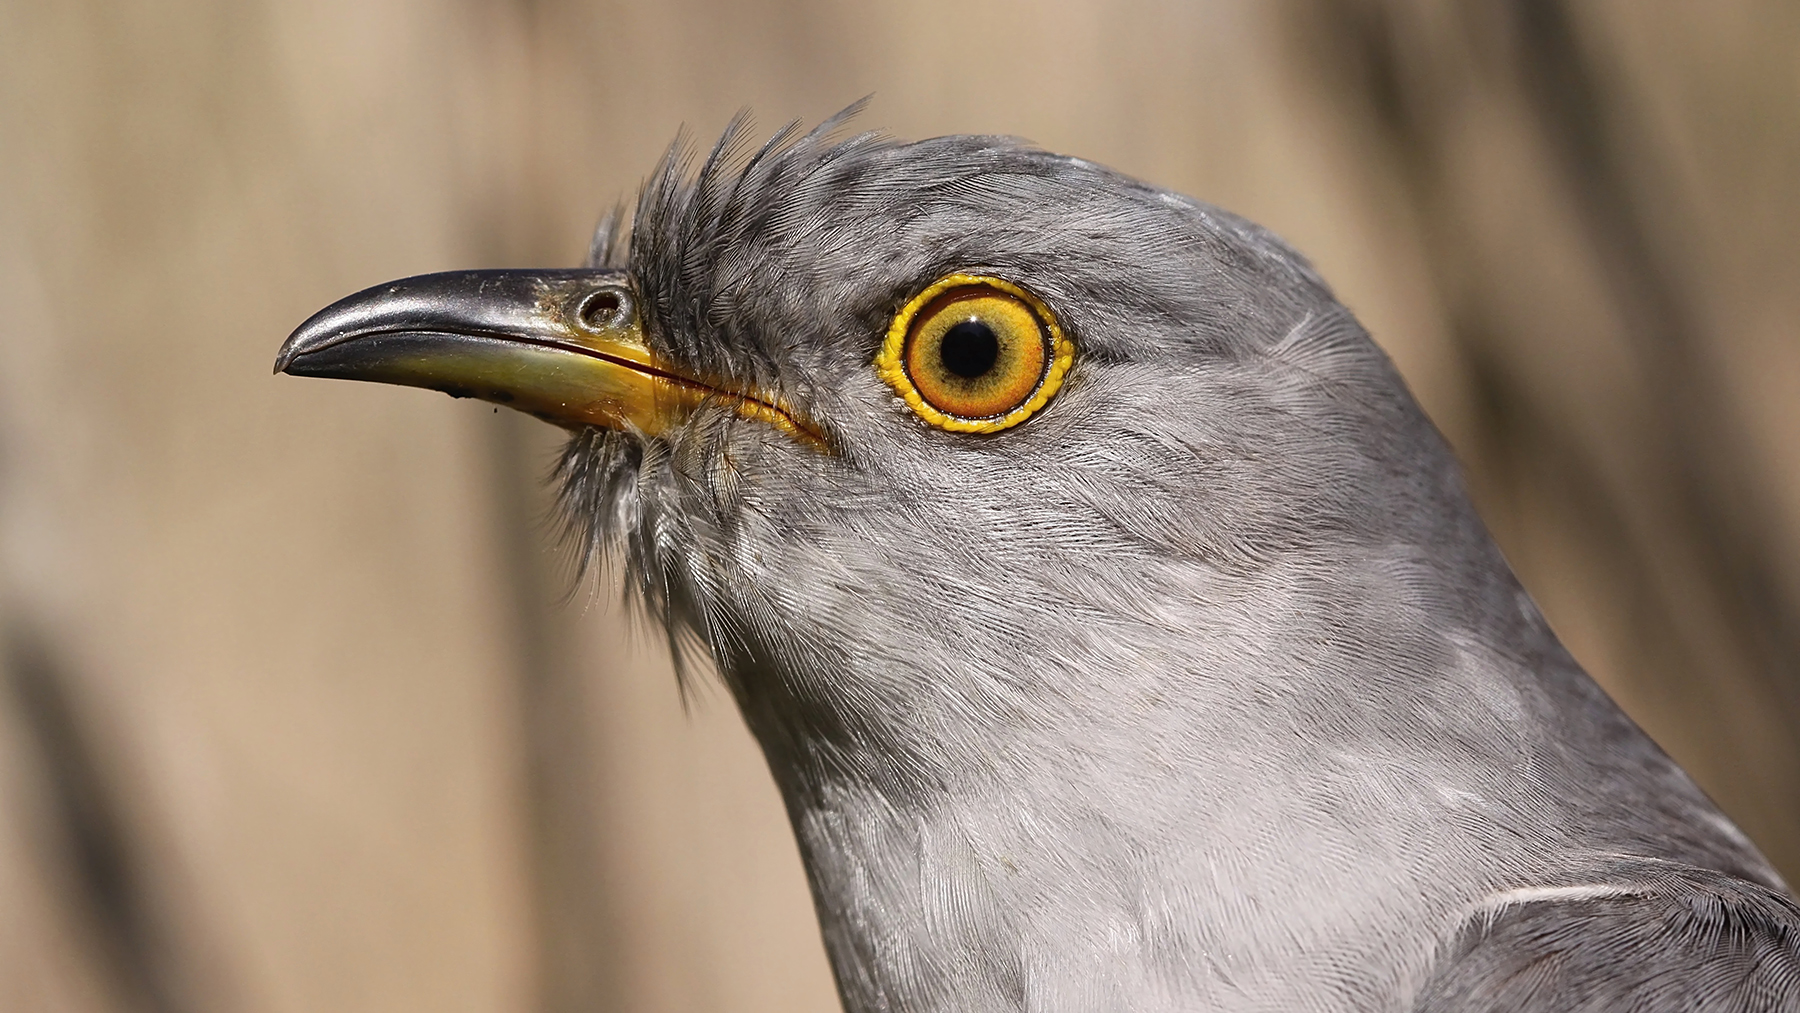 1.The common cuckoo lays its eggs in the nests of other bird species, burdening these hosts with the task of raising its young. Photo by Olda Mikulica